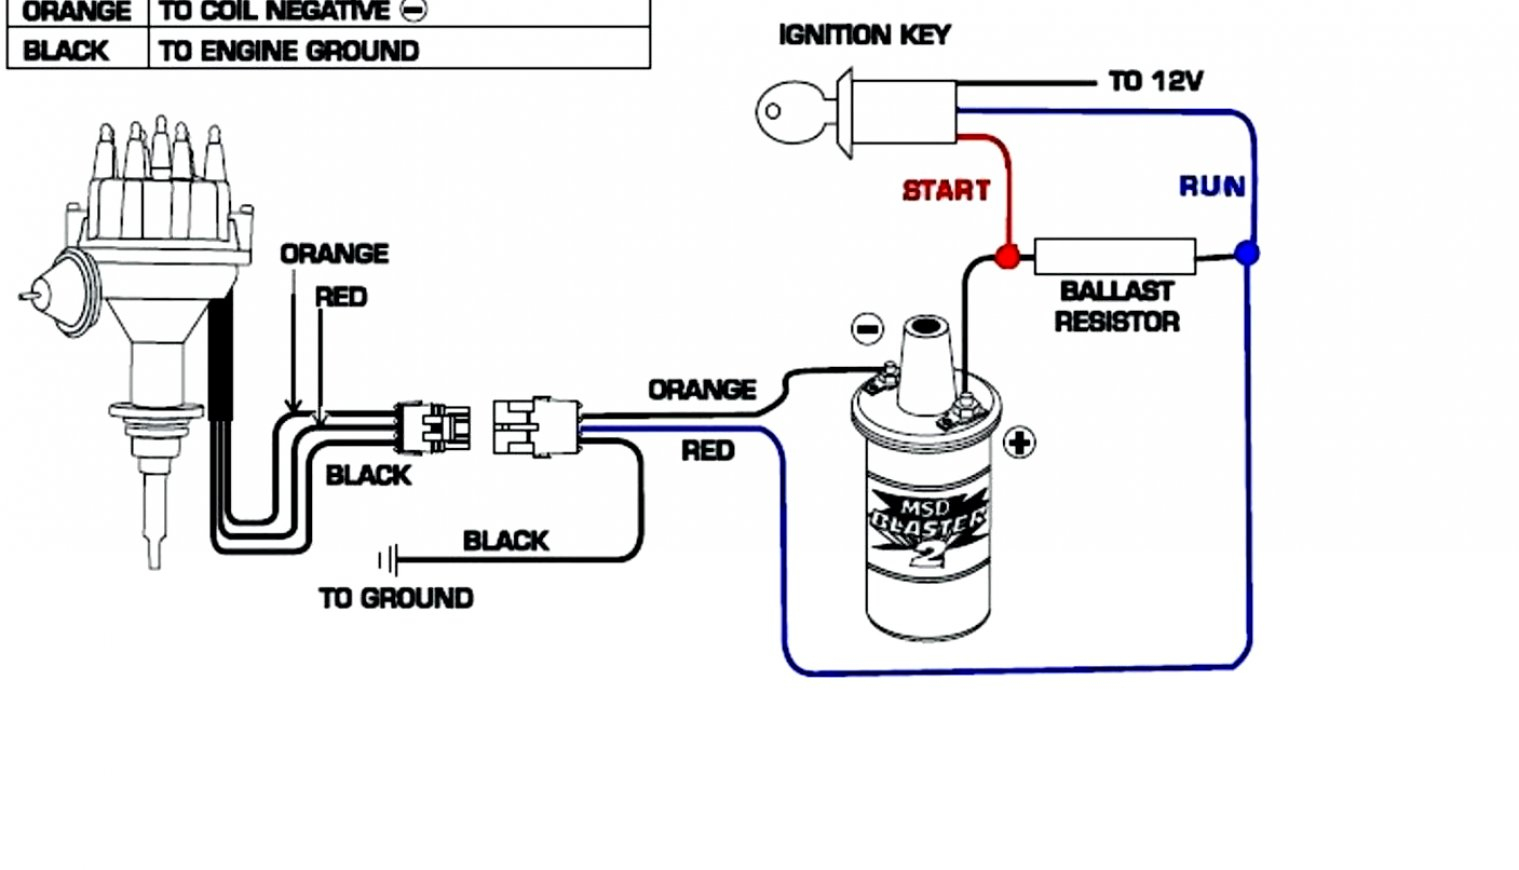 Ceiling Fan Capacitor Wiring Diagram from 2020cadillac.com